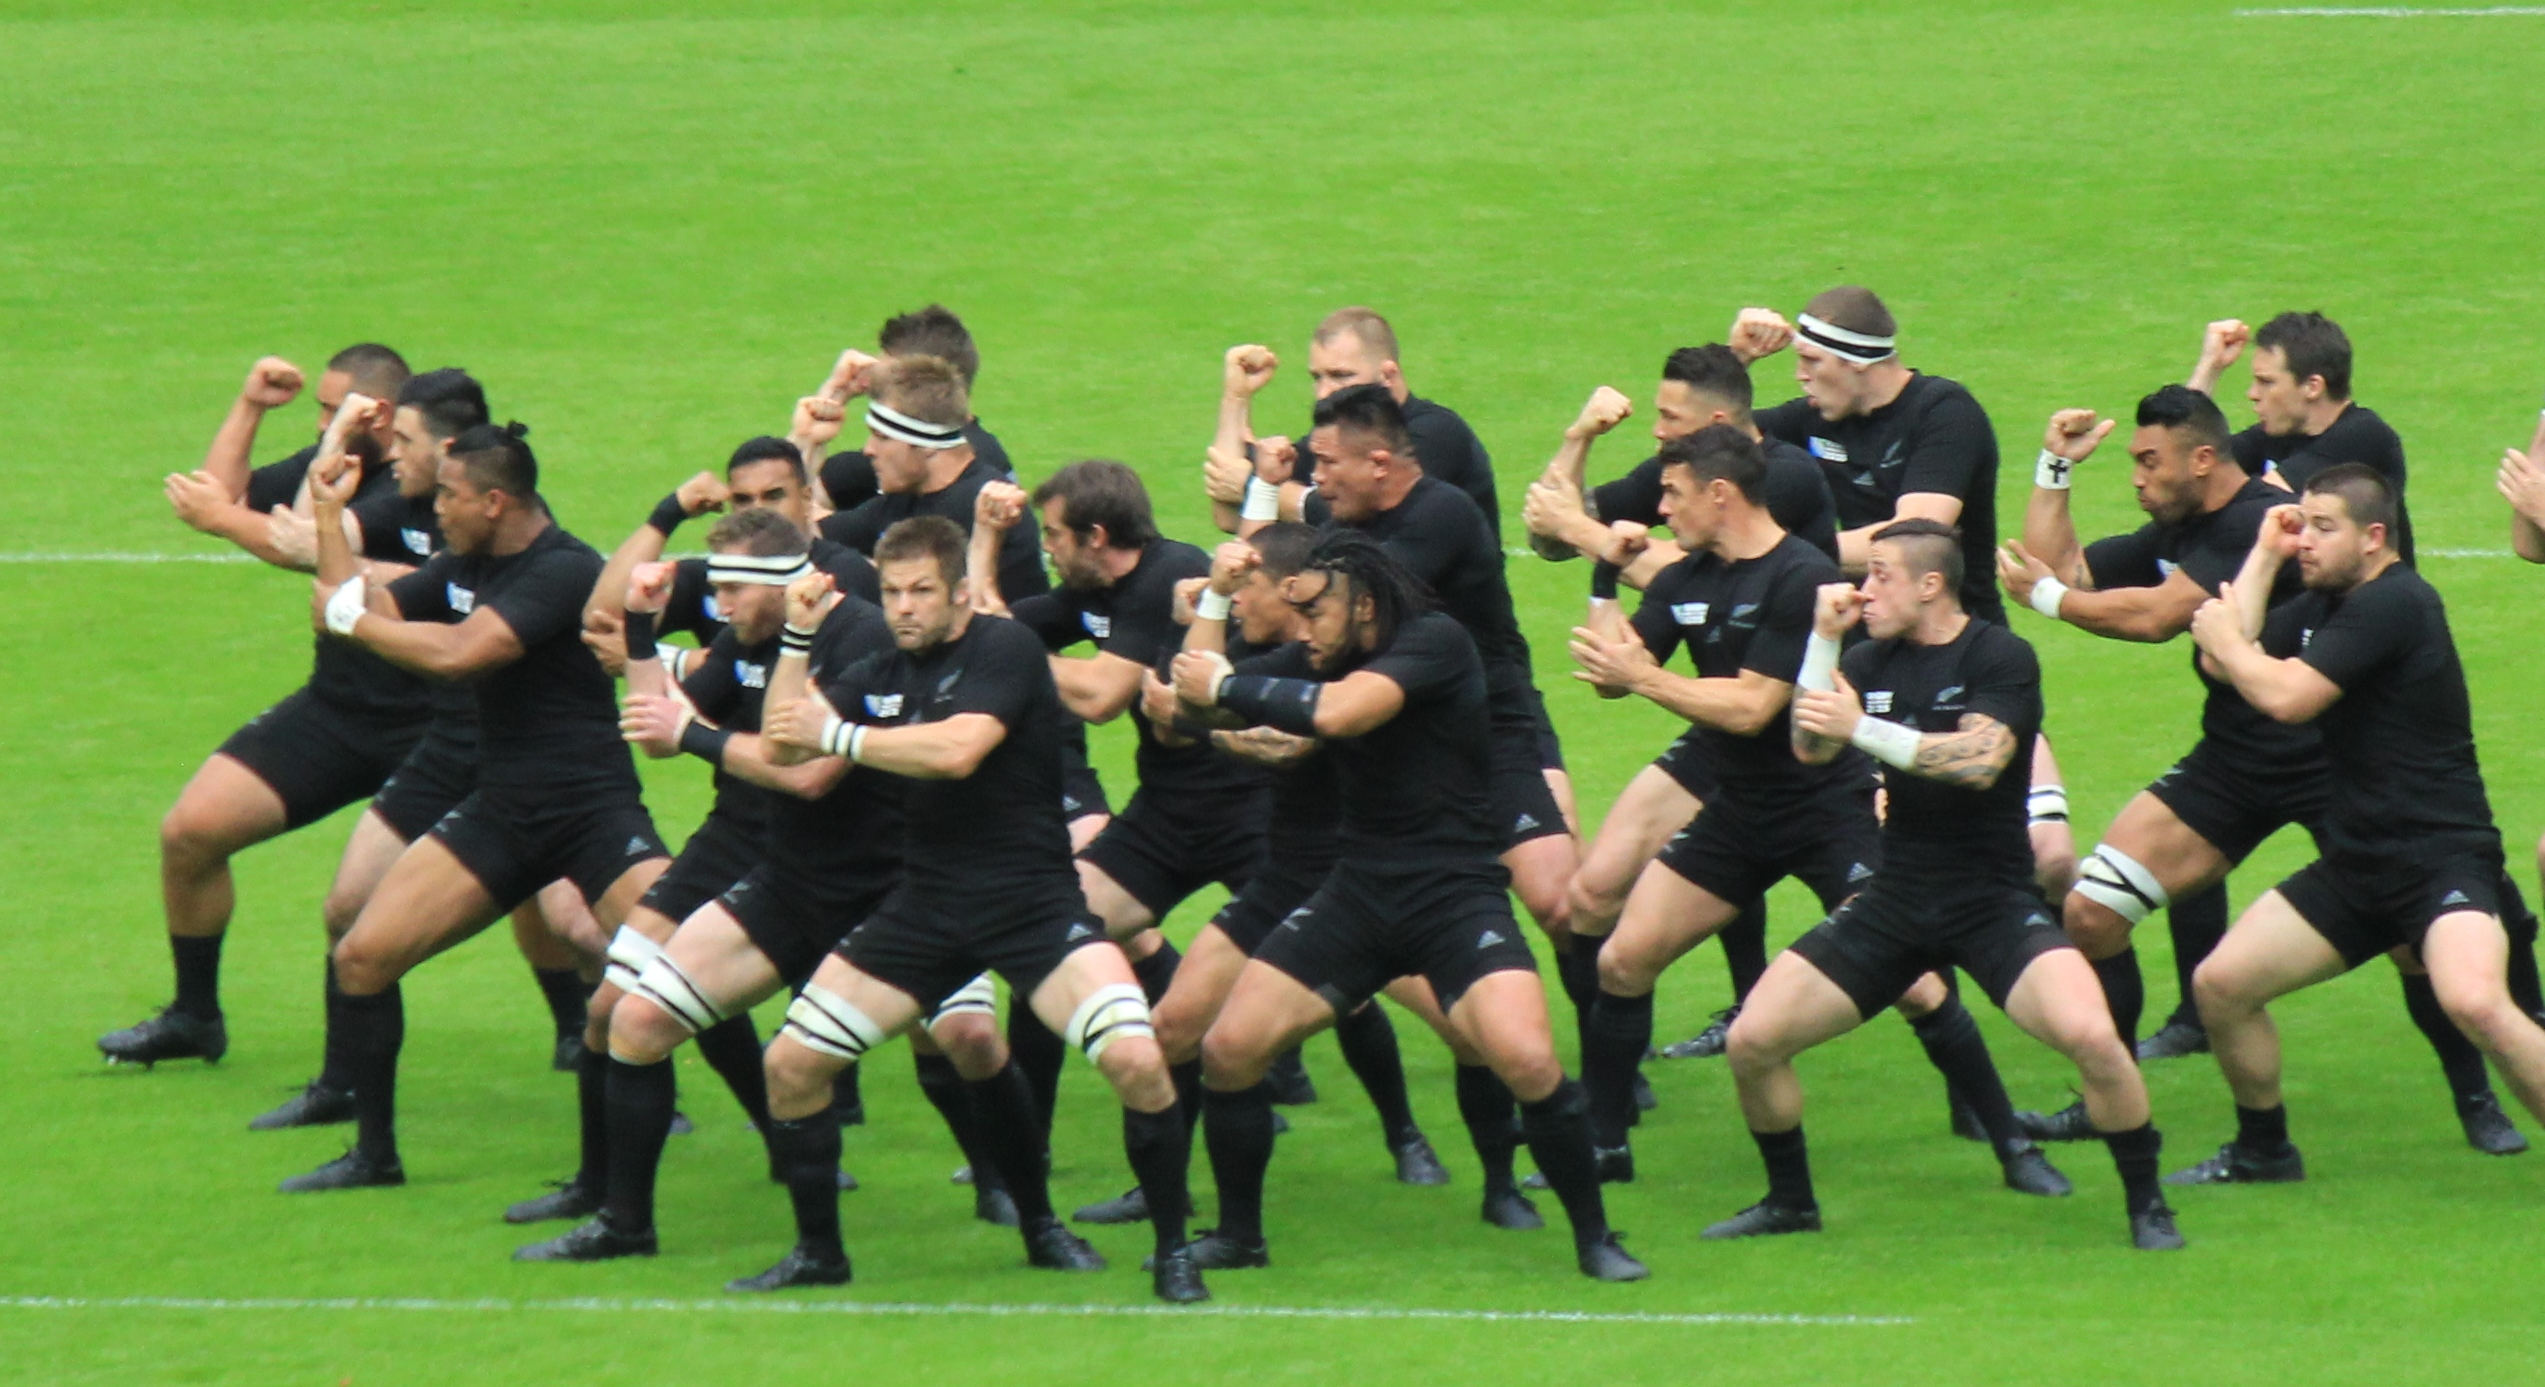 LET'S HAKA!!! / Smiley